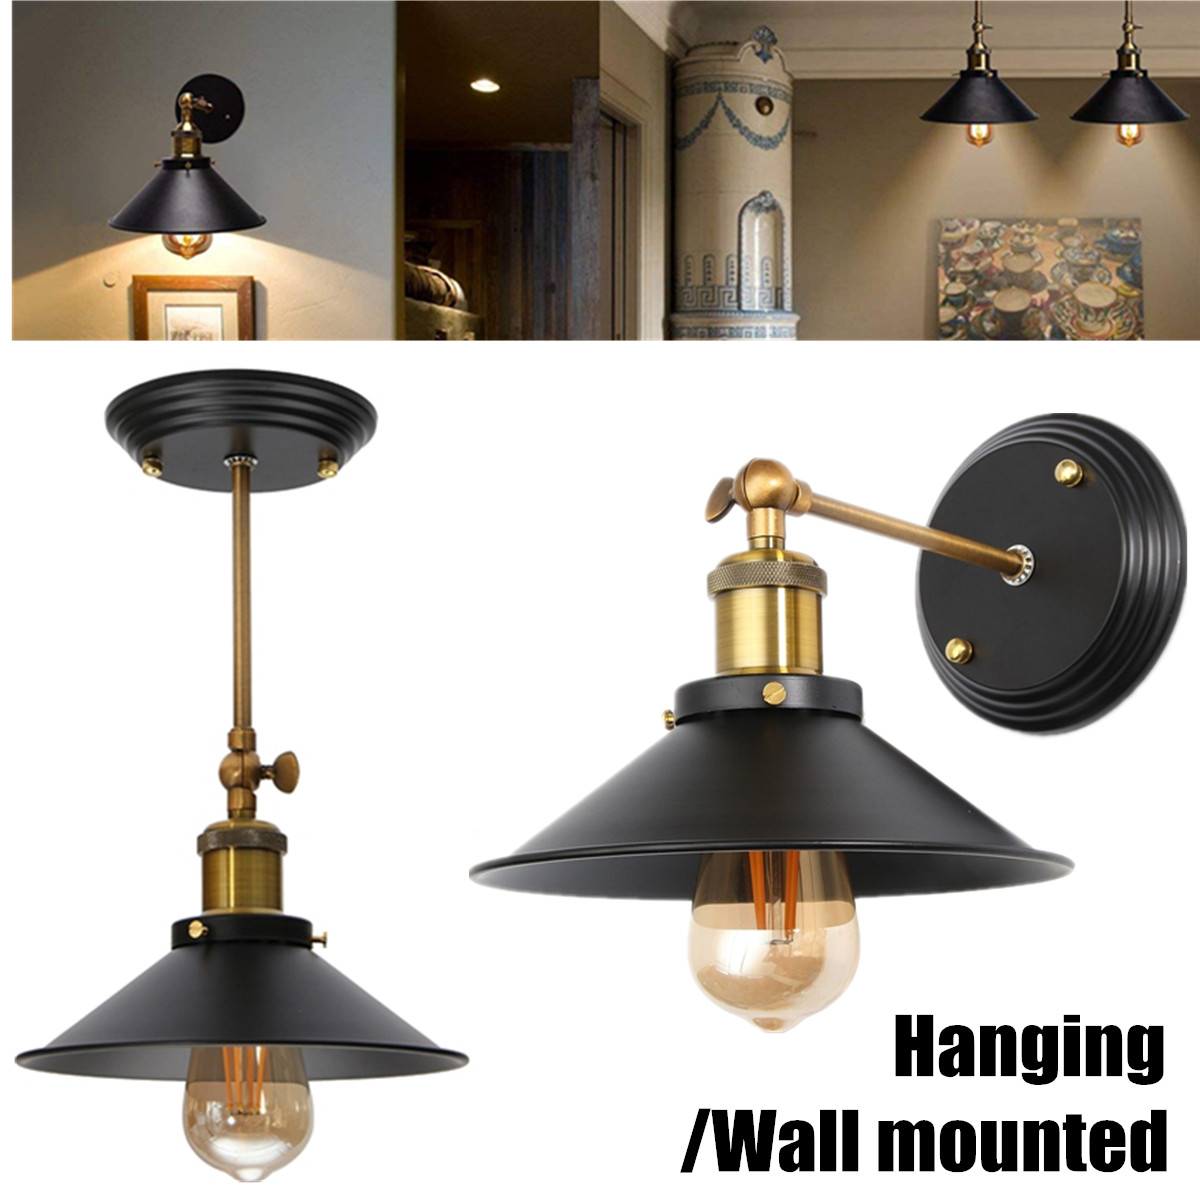 Retro Industrial Iron Pendant Lights Loft Lamp Wall Sconce Light Vintage Hang Pendant Ceiling Lamp For Restaurant Kitchen Home